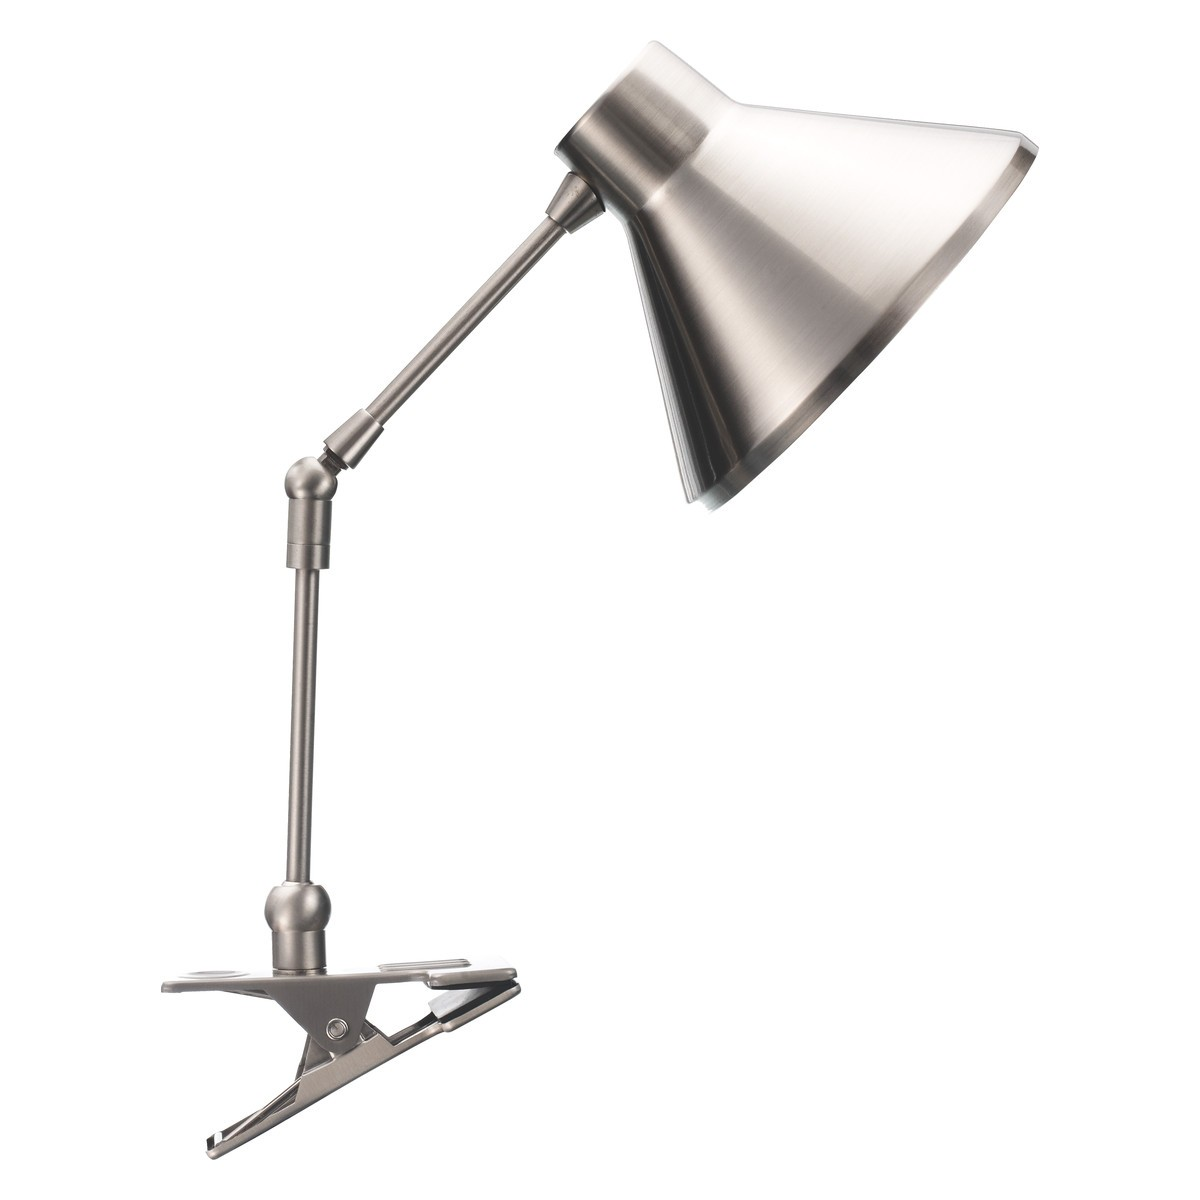 Beauty Meets Function With Extraordinary Desk lamp clamp